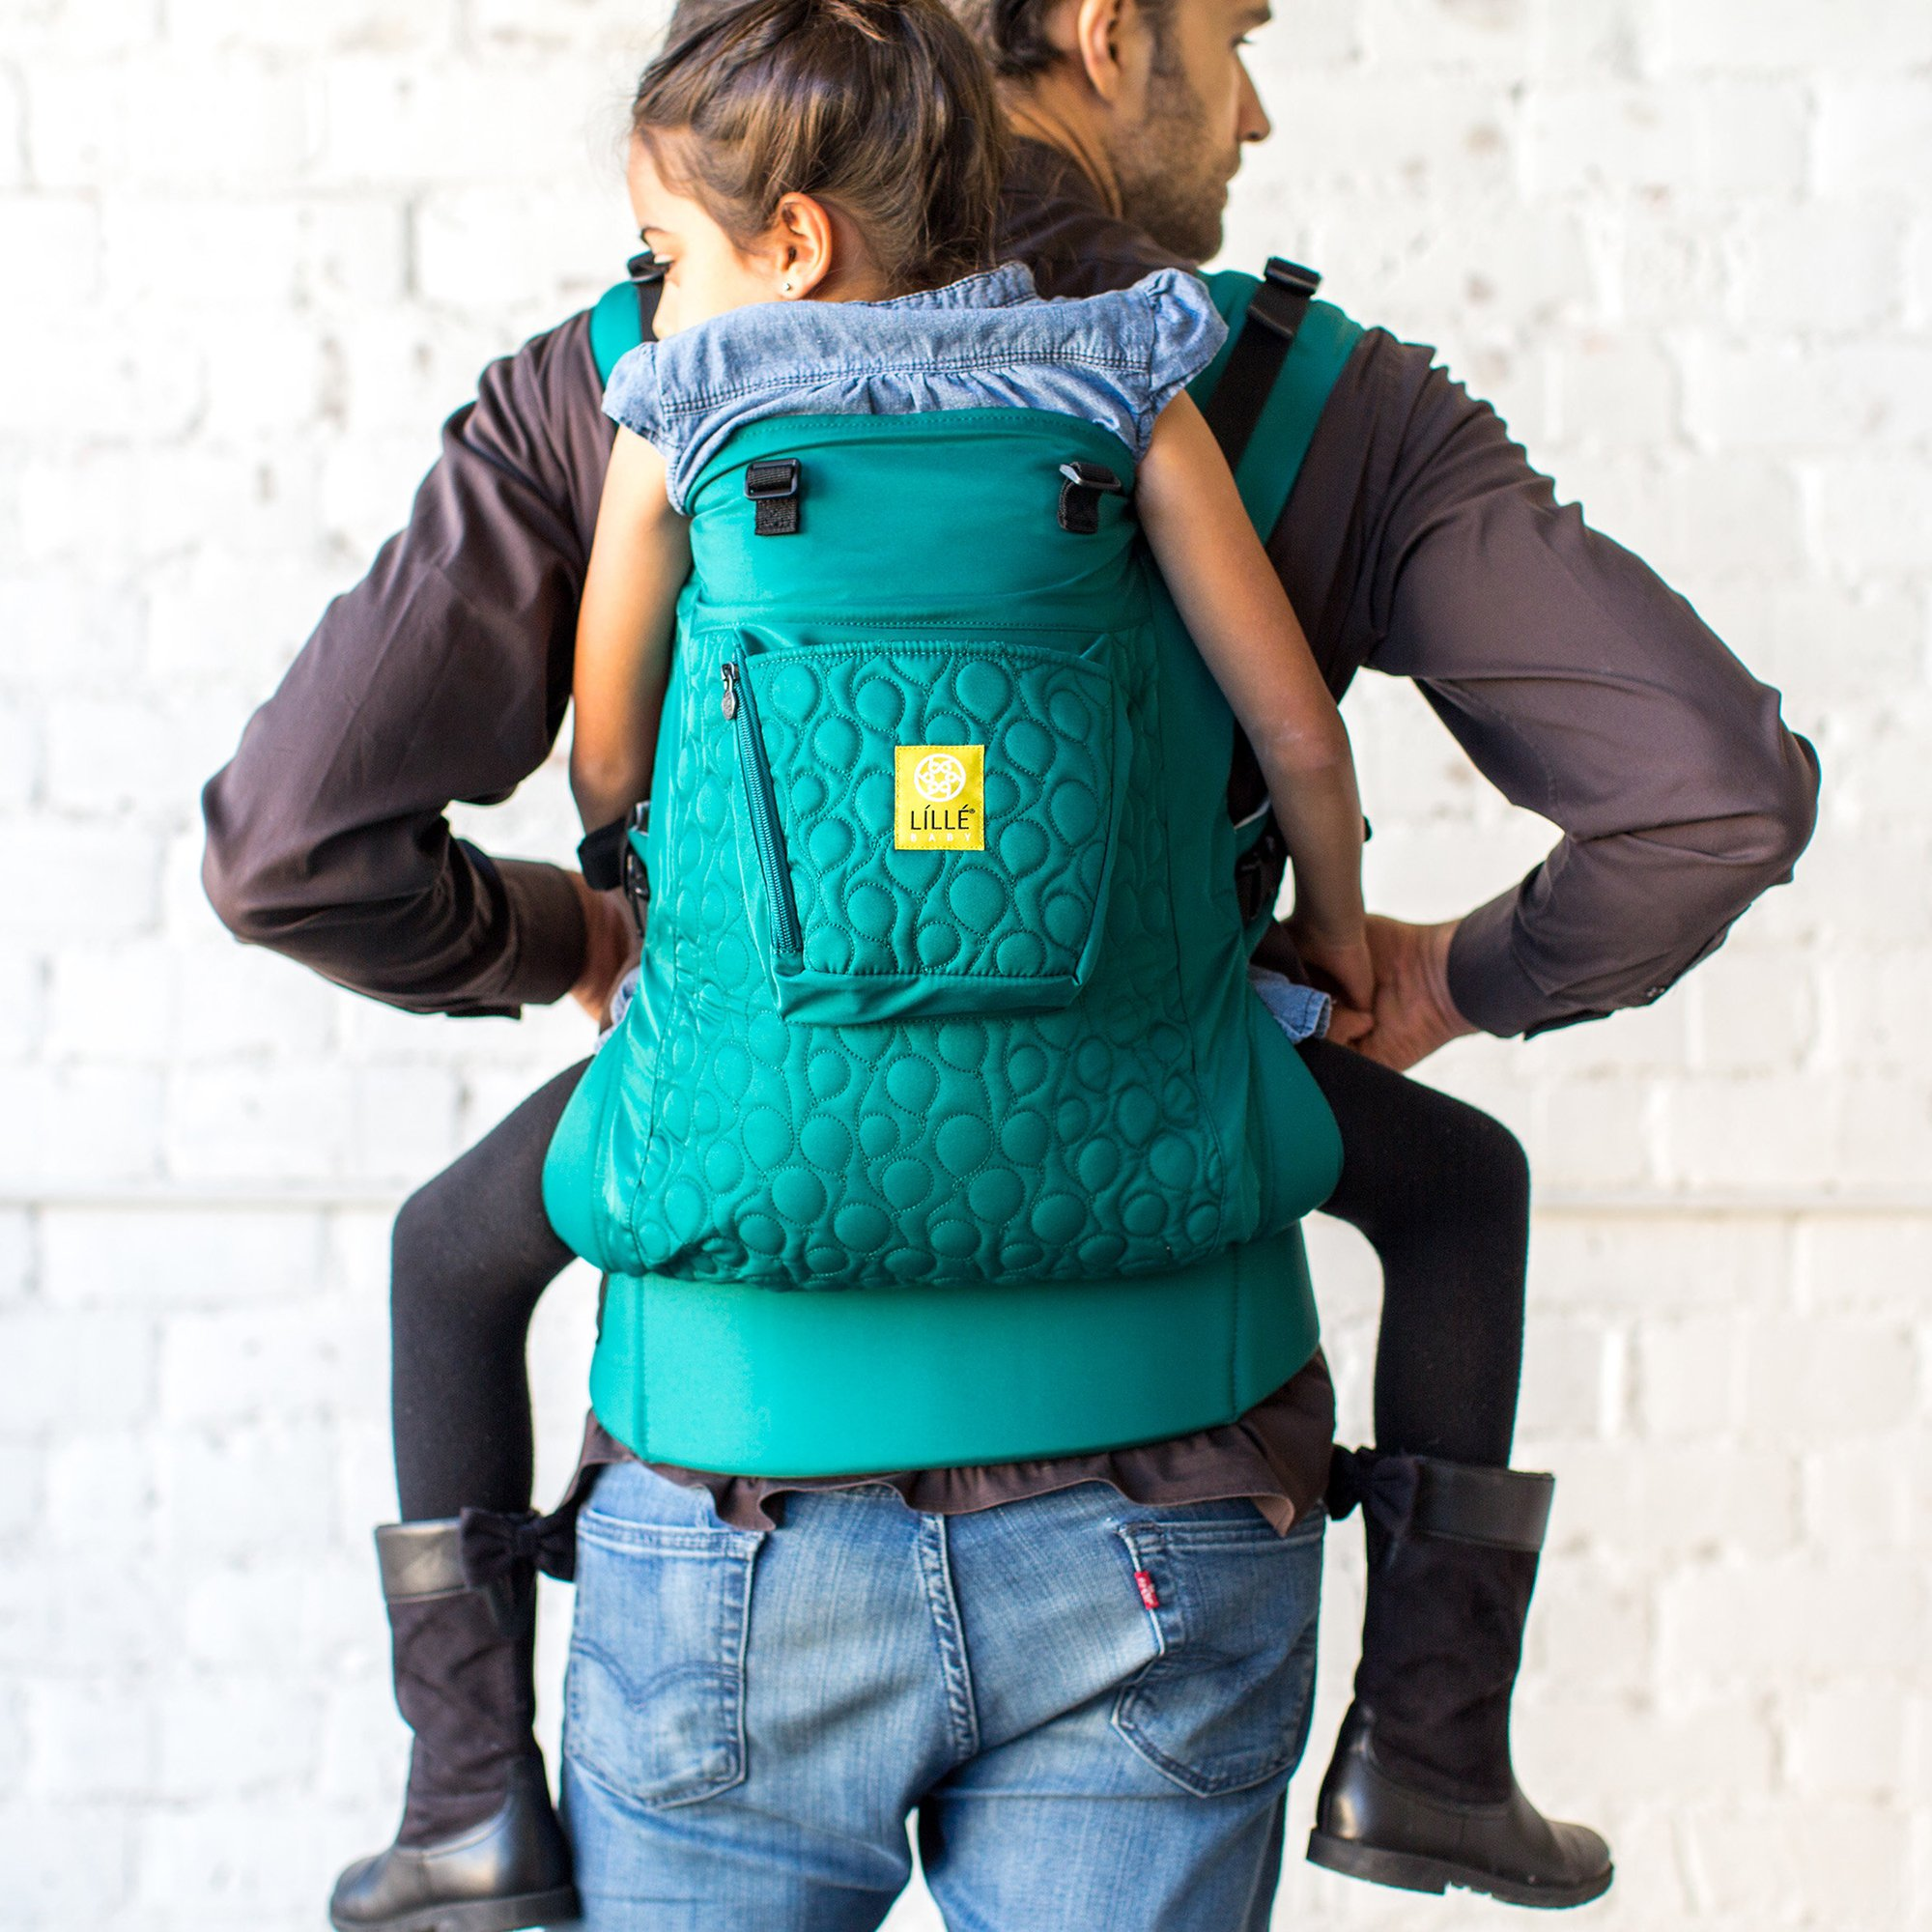 LILLEbaby 3 in 1 Carryon Toddler Carrier- Embossed Emerald